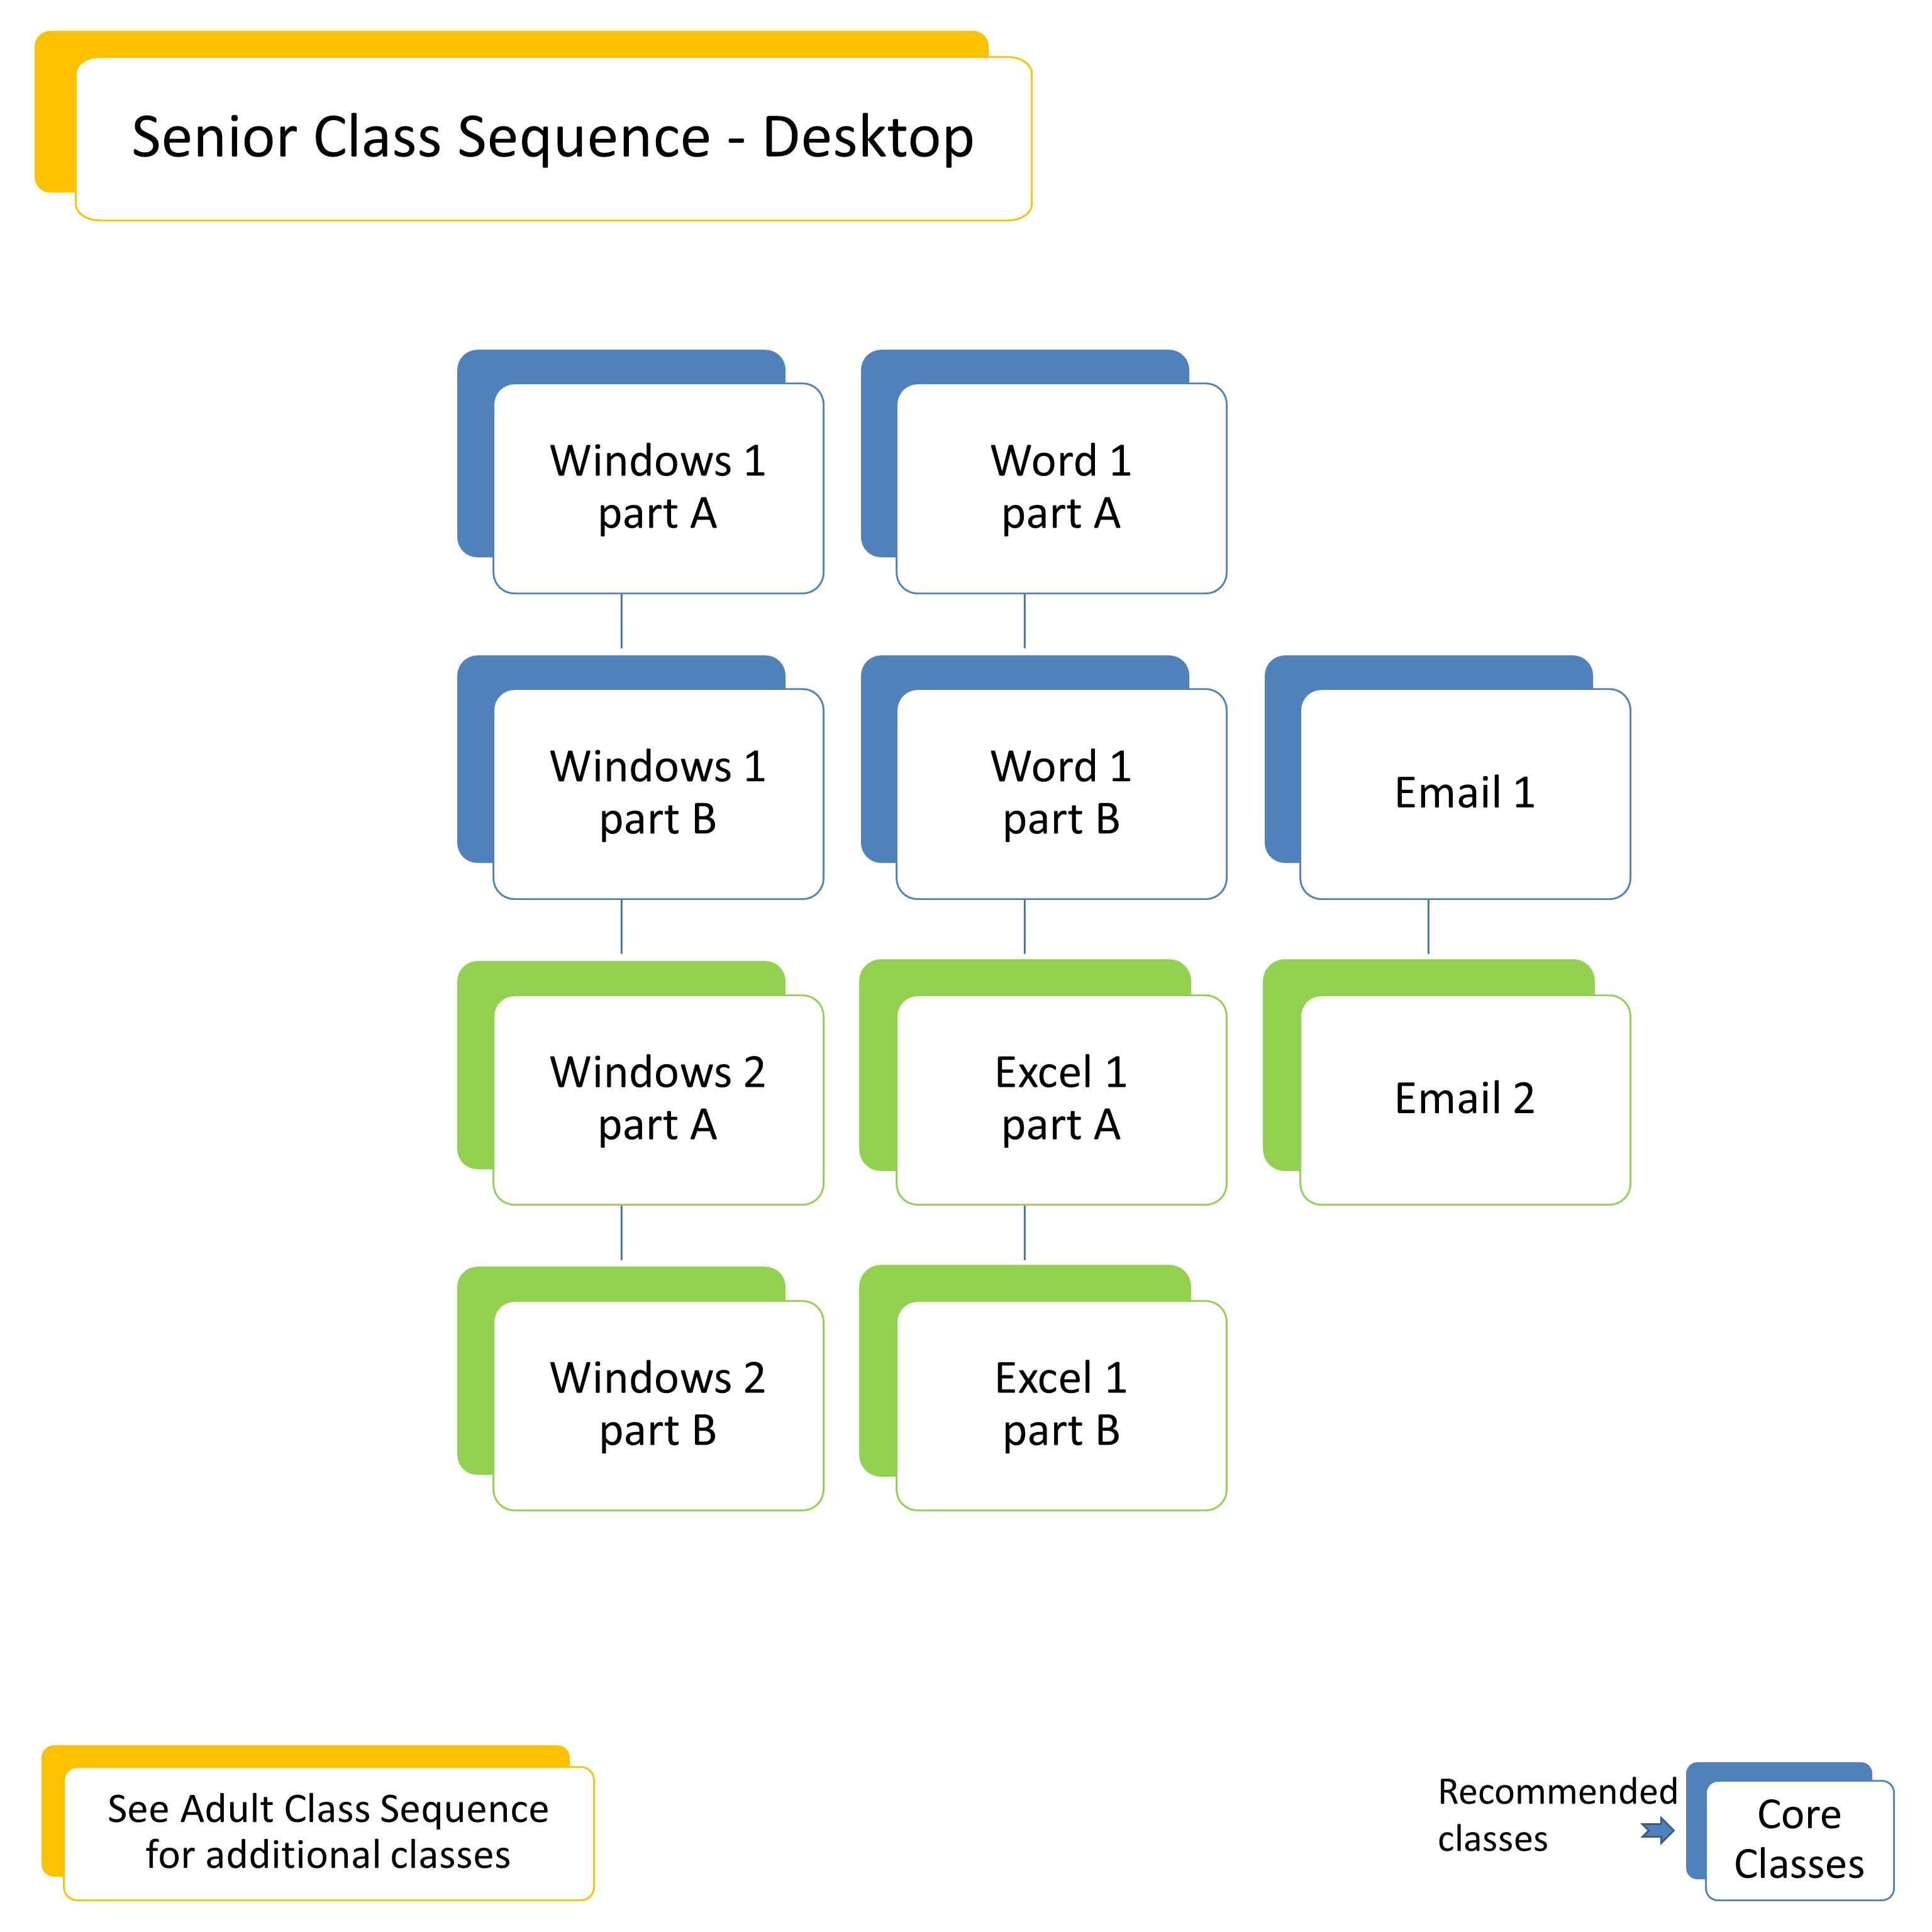 Senior Class Sequence Desktop